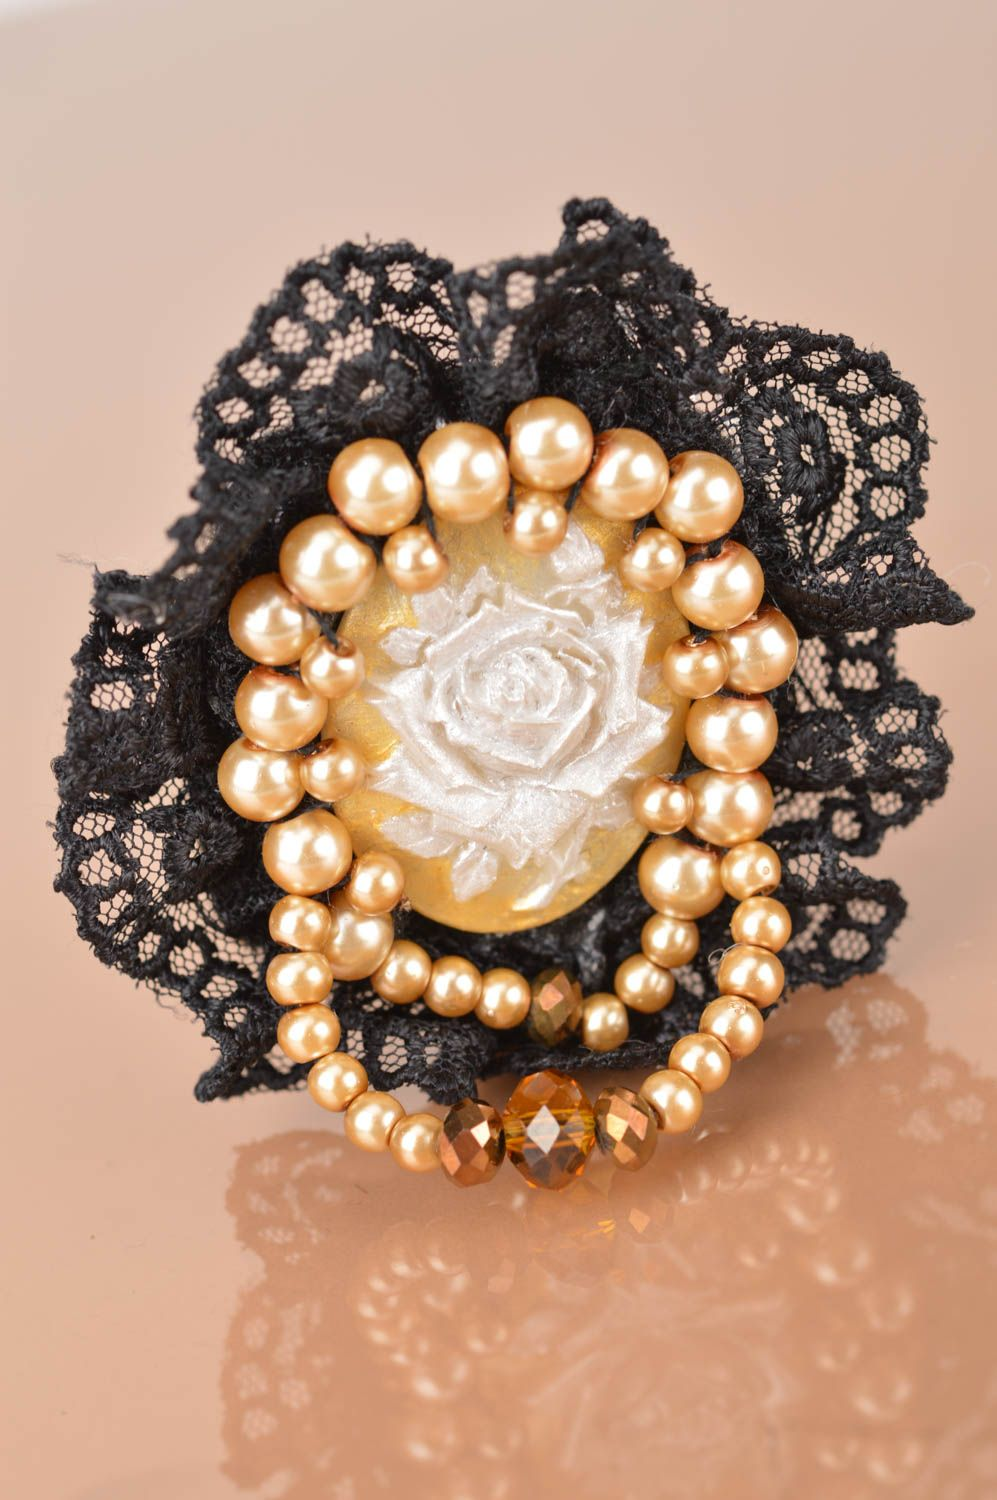 cameo brooches Unusual handmade designer cameo brooch with lace and beads in vintage style - MADEheart.com